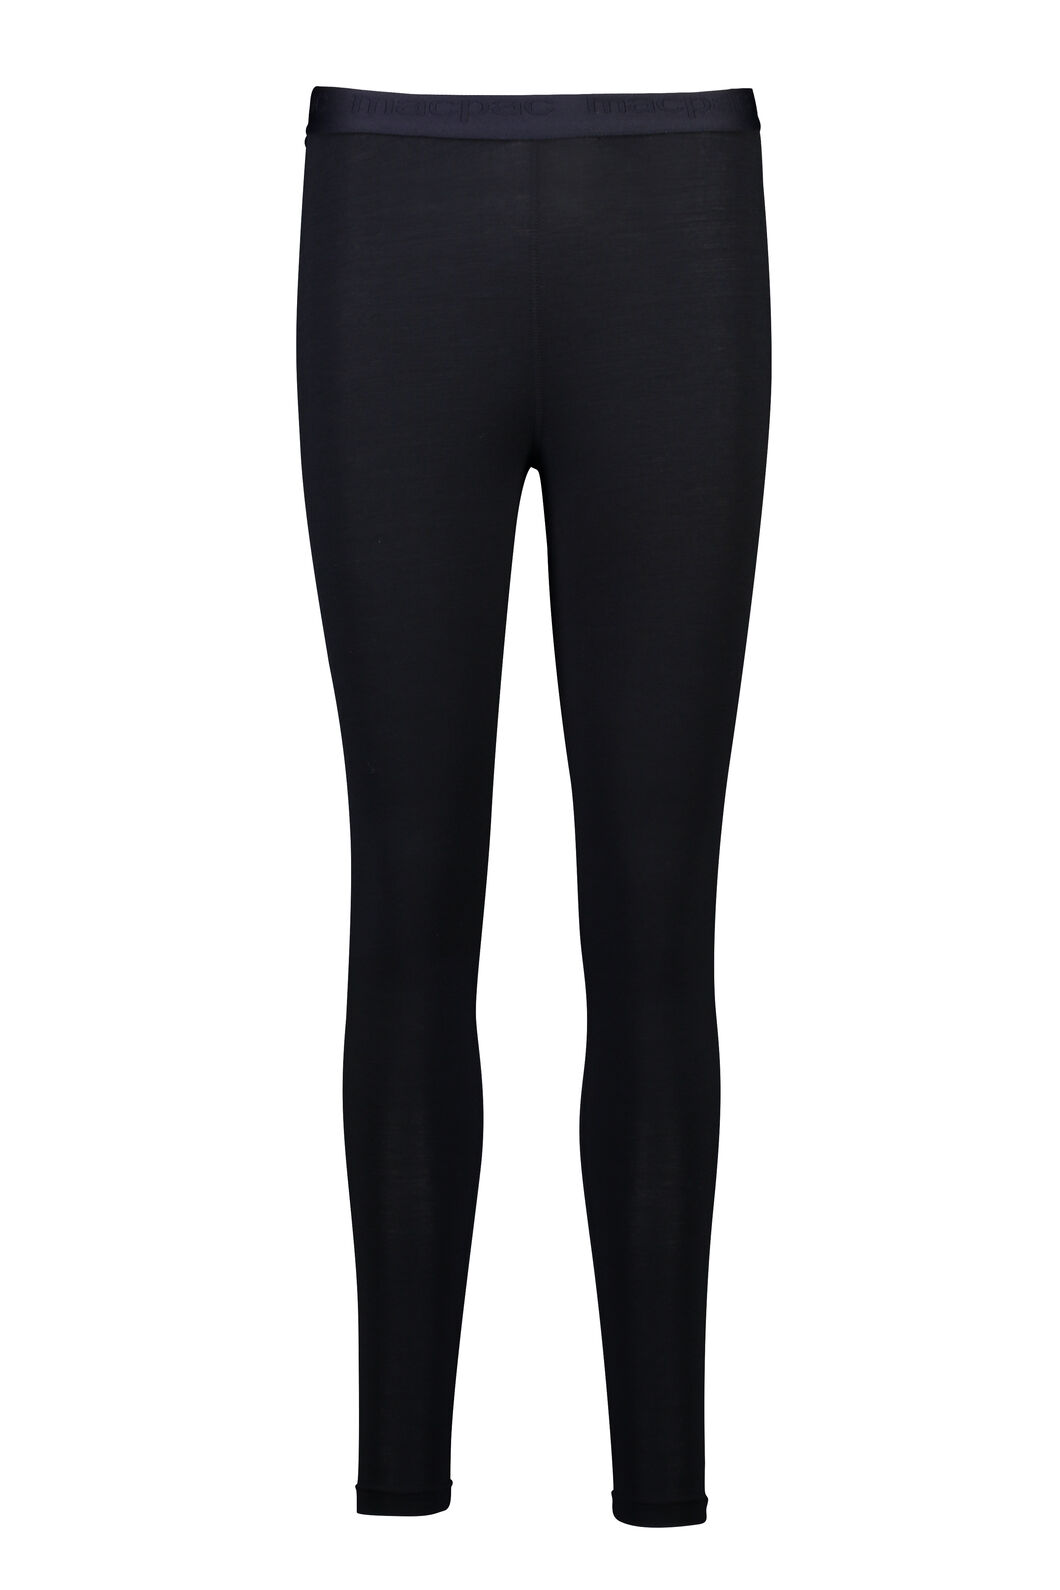 Macpac 180 Merino Long Johns - Women's, Black, hi-res